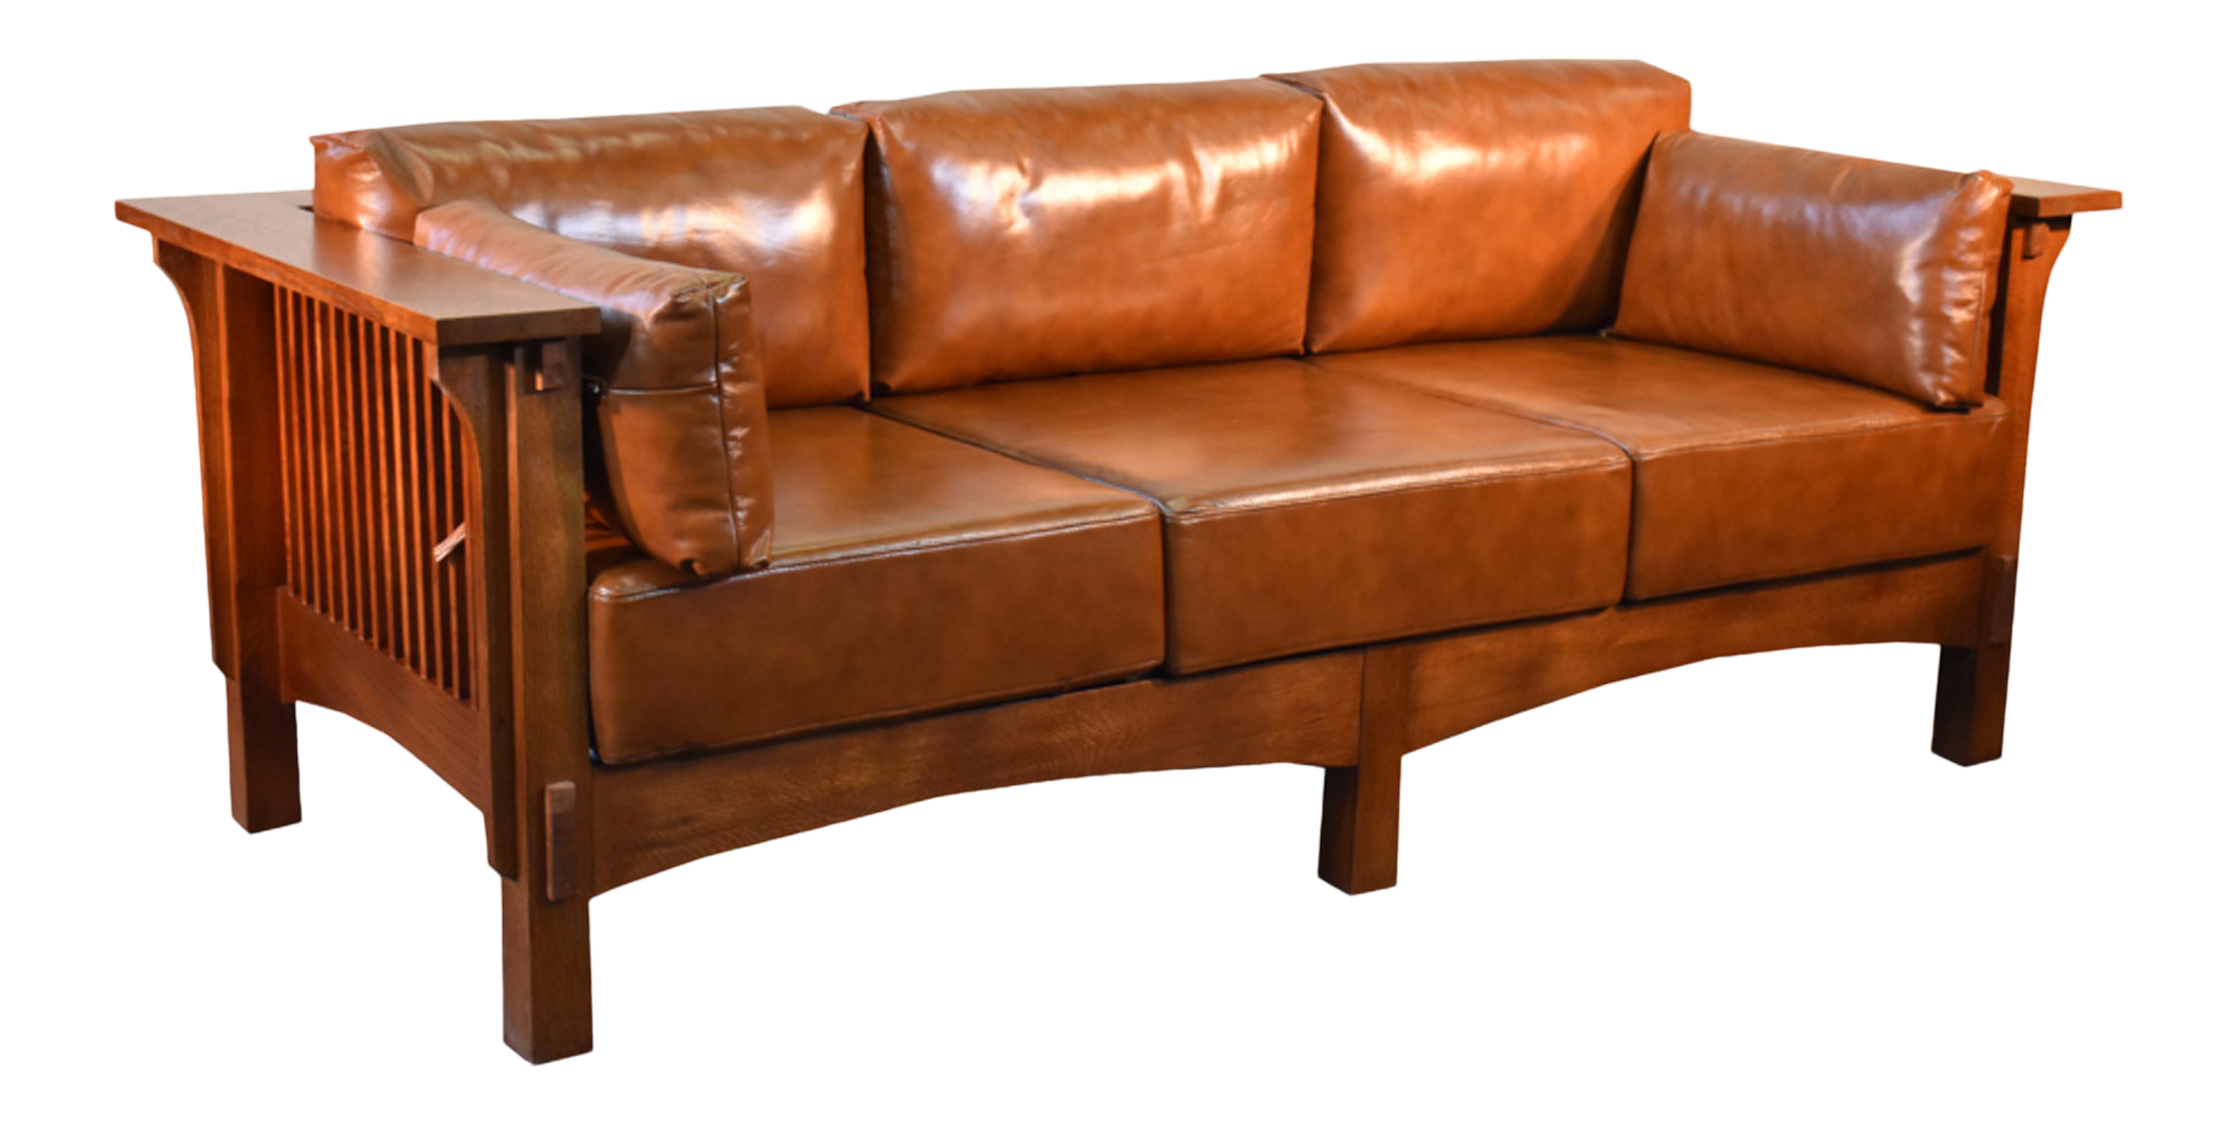 Crafters And Weavers Arts And Crafts Craftsman Crofter Style Sofa Russet Brown Leather Rb1 In 2020 Quarter Sawn White Oak Oak Sofa Mission Furniture